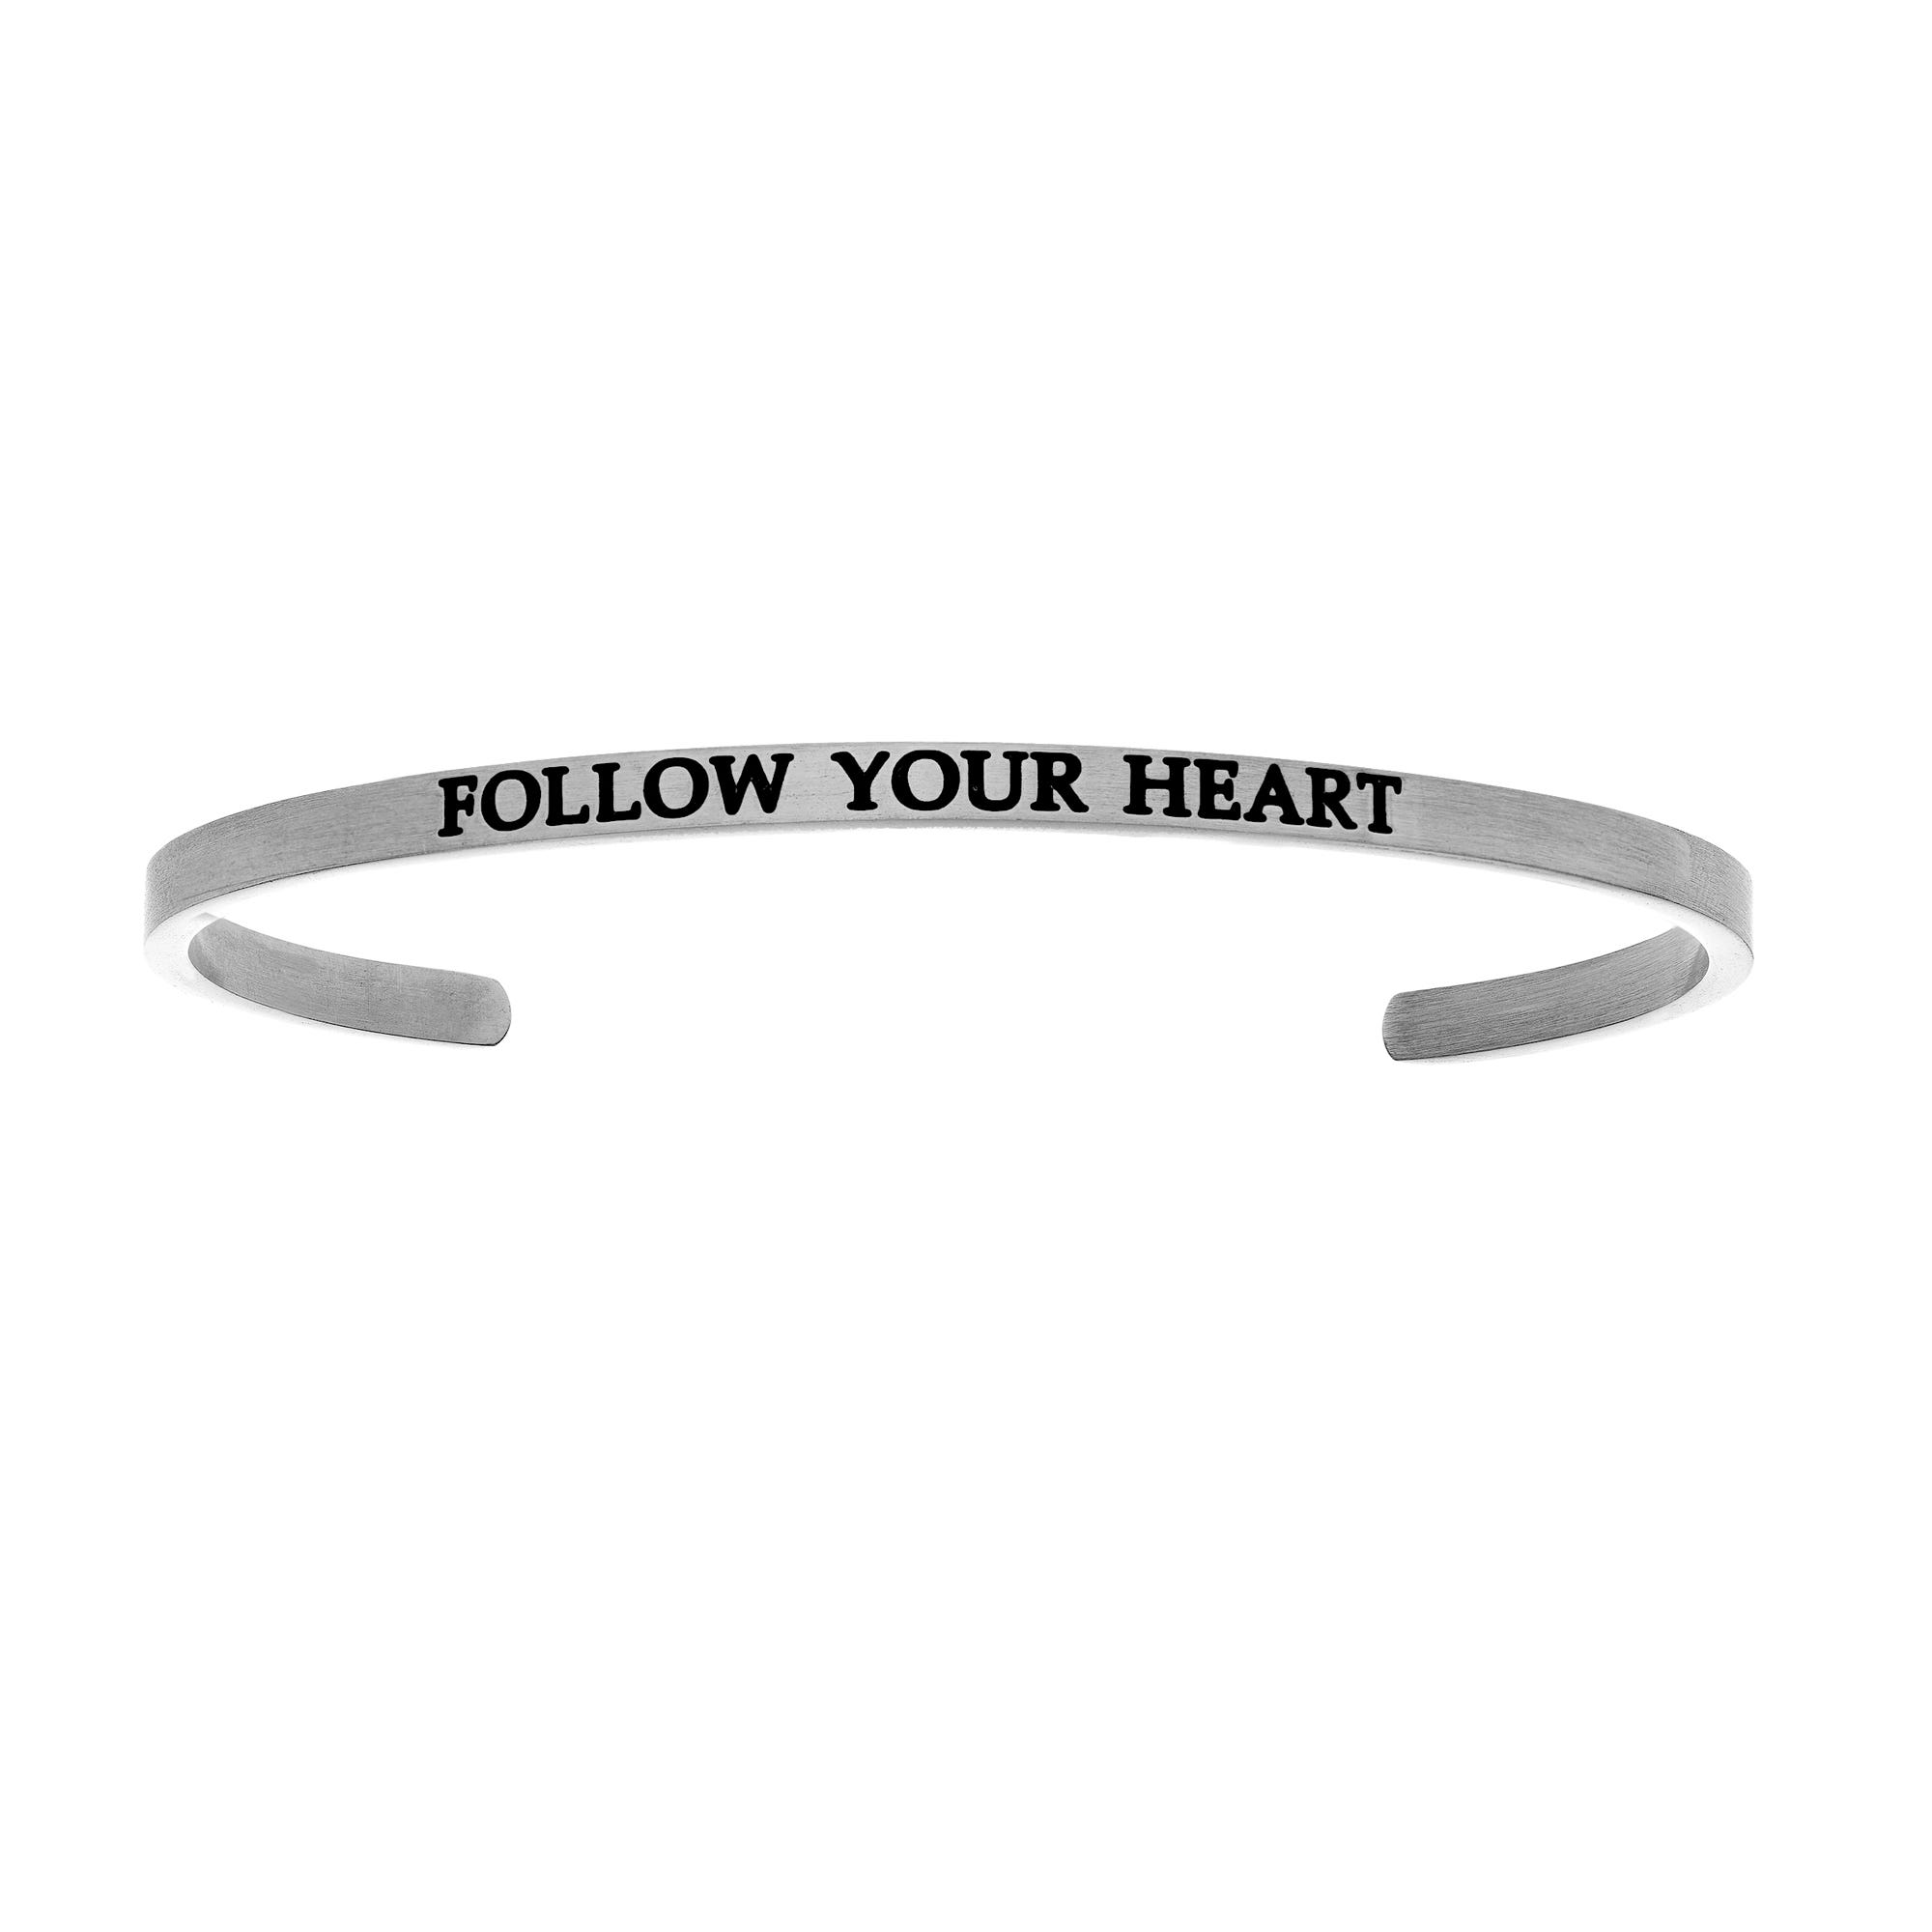 Follow Your Heart. Intuitions Cuff Bracelet in White Stainless Steel